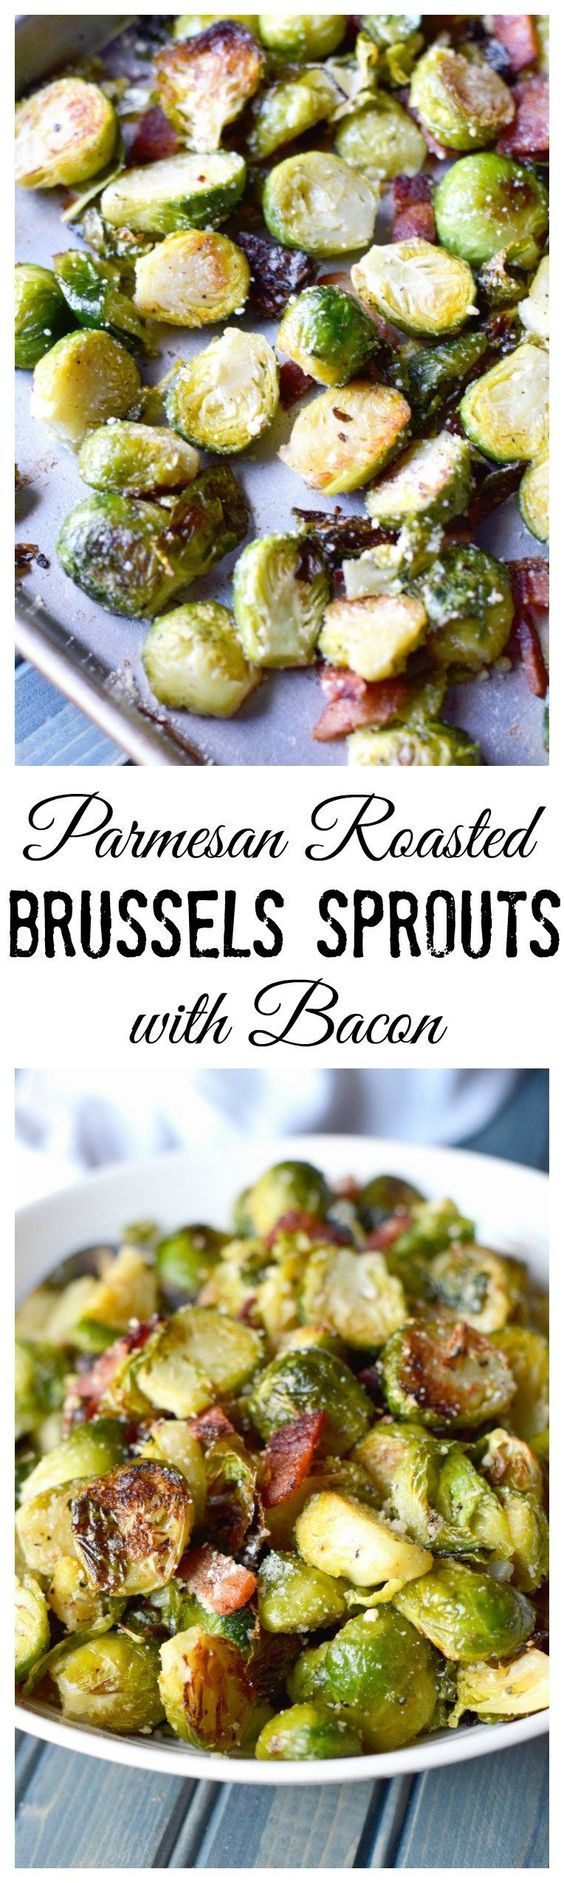 Roasted Parmesan Brussels Sprouts with Bacon Vegetable Side Dish Recipe via Butter Your Biscuit - This Roasted Parmesan Brussels Sprouts with Bacon recipe is to die for. Perfect for any Holiday side dish.